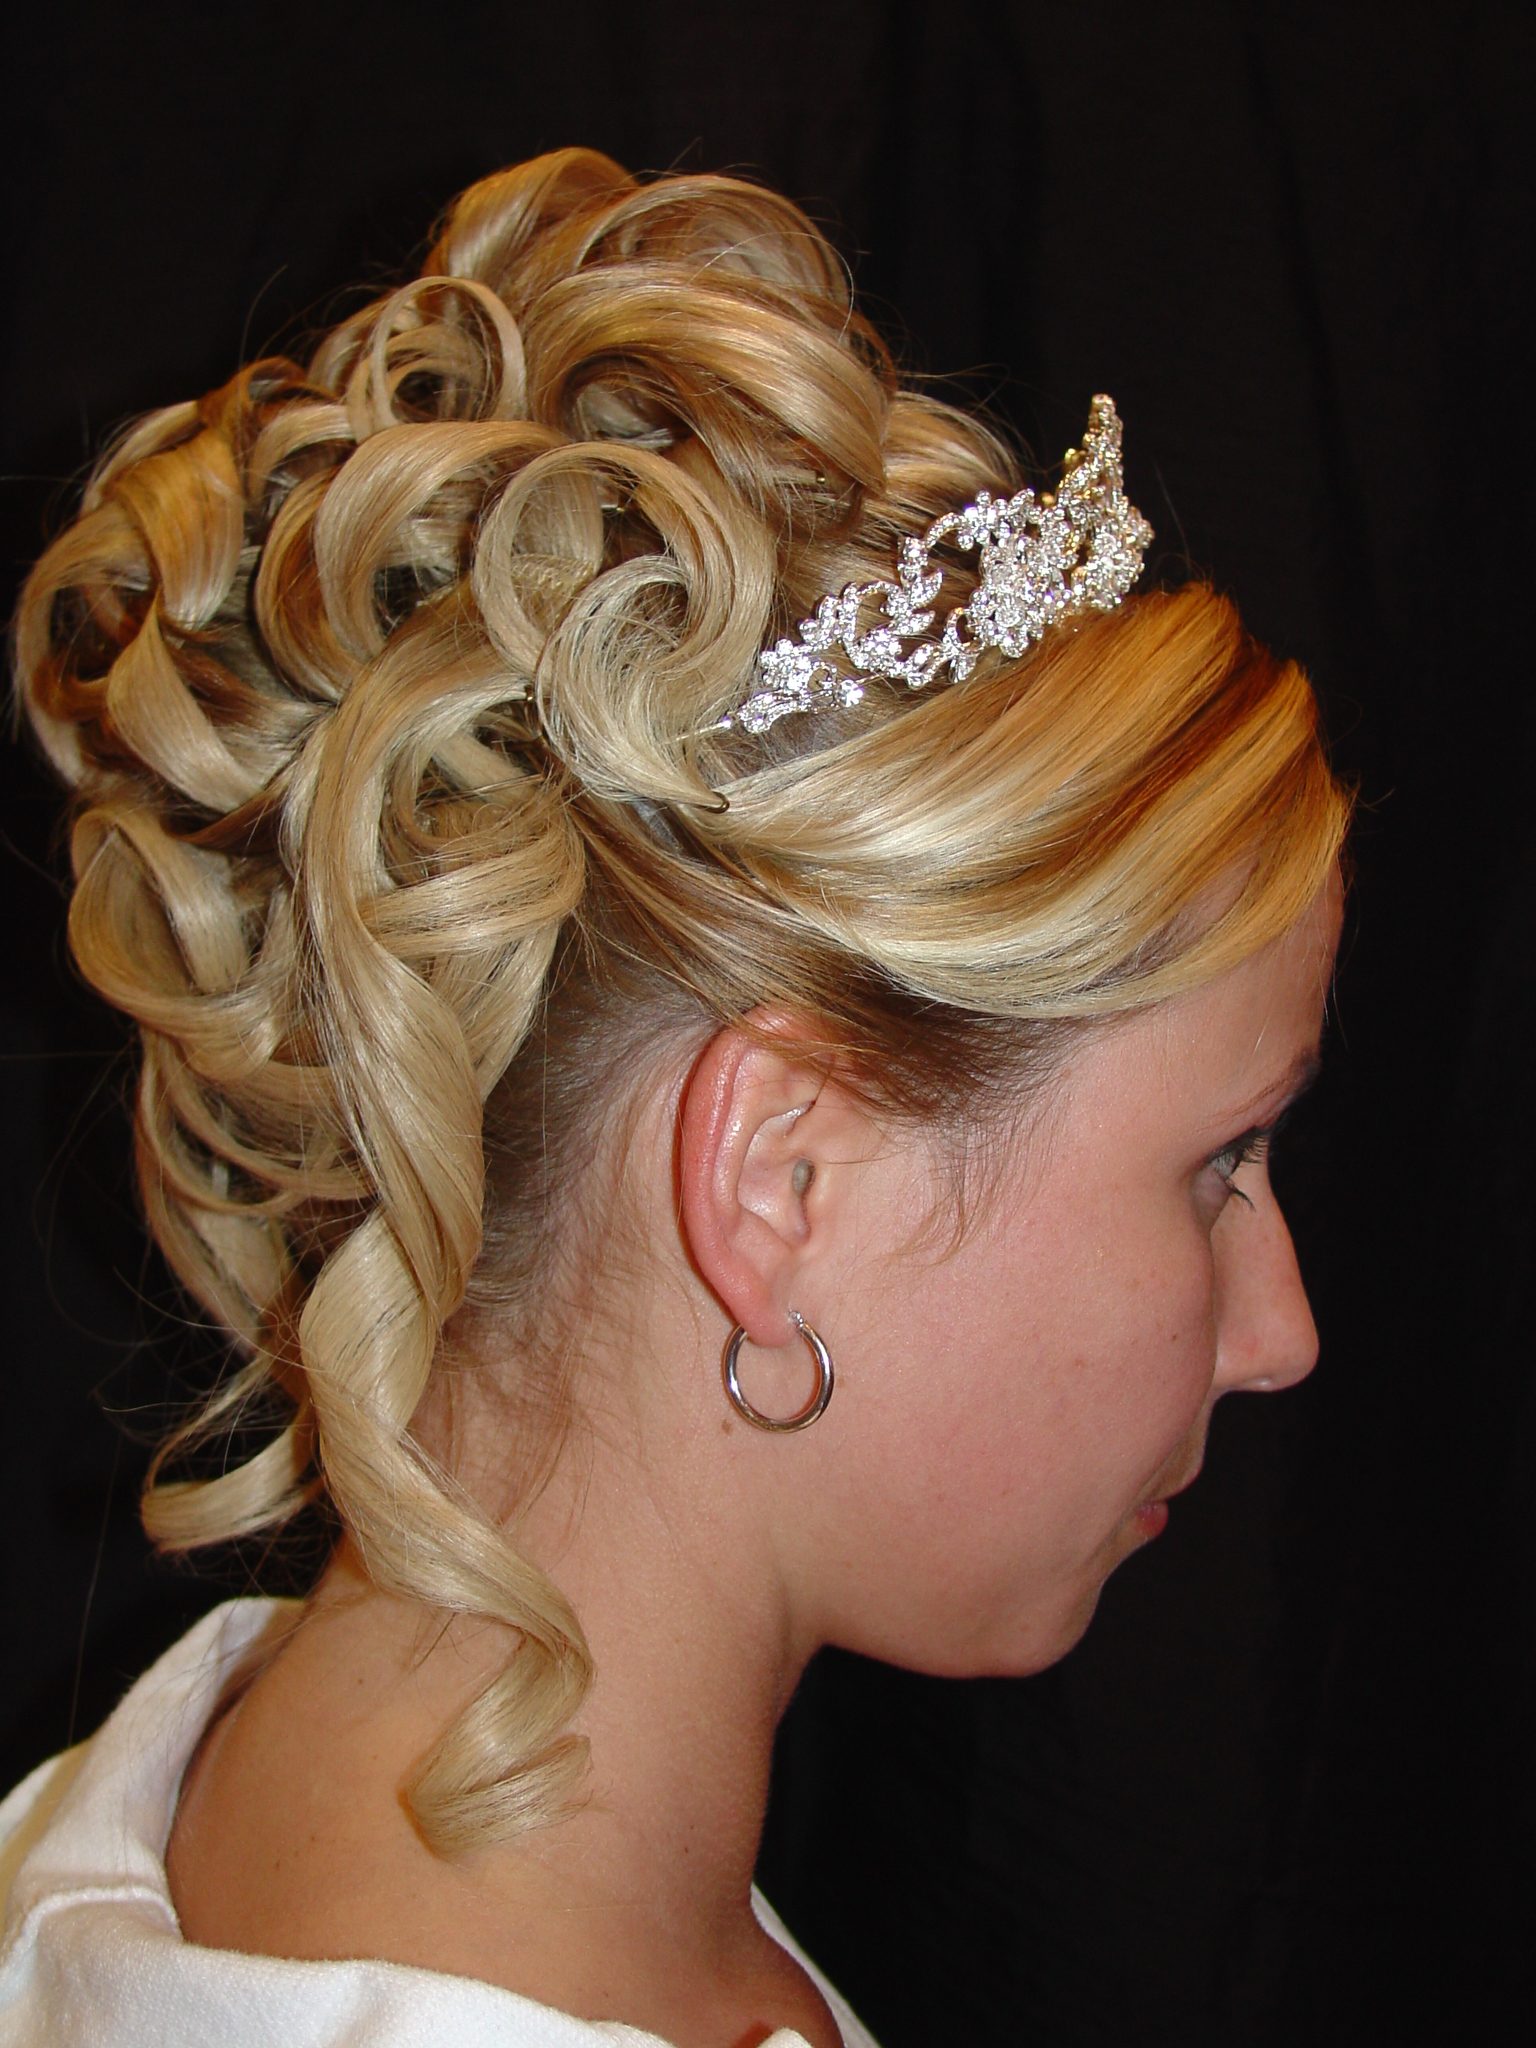 20 Easy Updo Hairstyles for Long Hair   MagMent